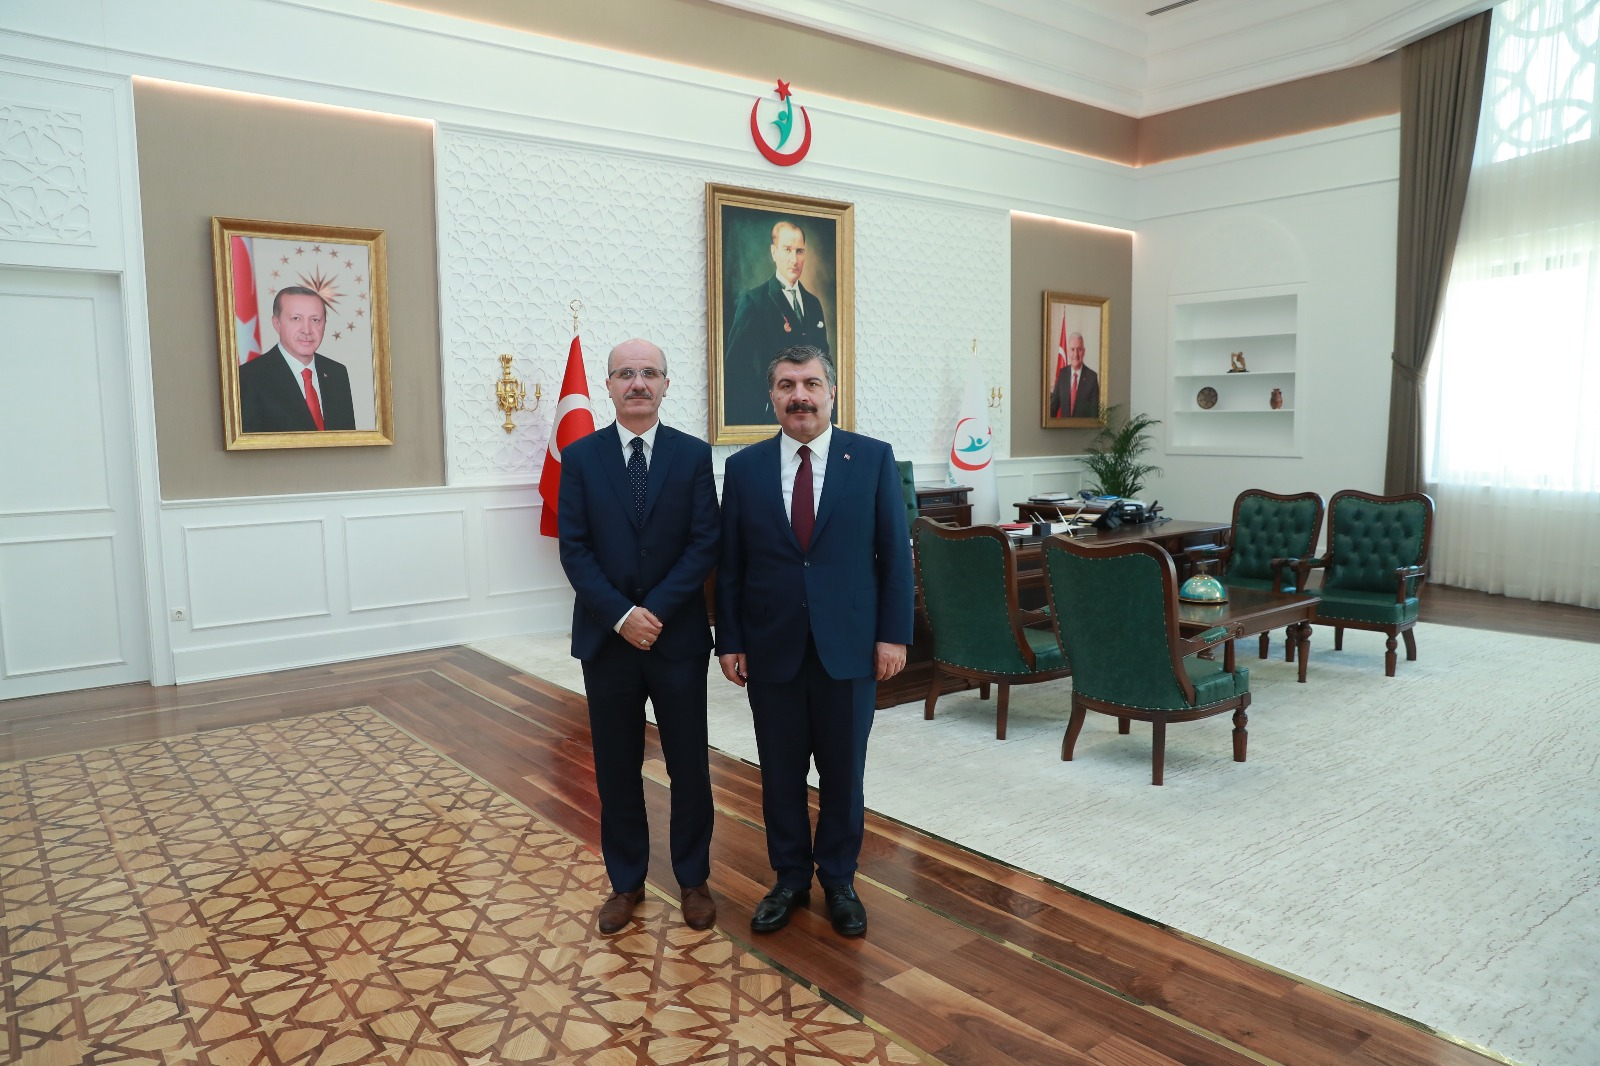 Our Rector visited the Minister of Health